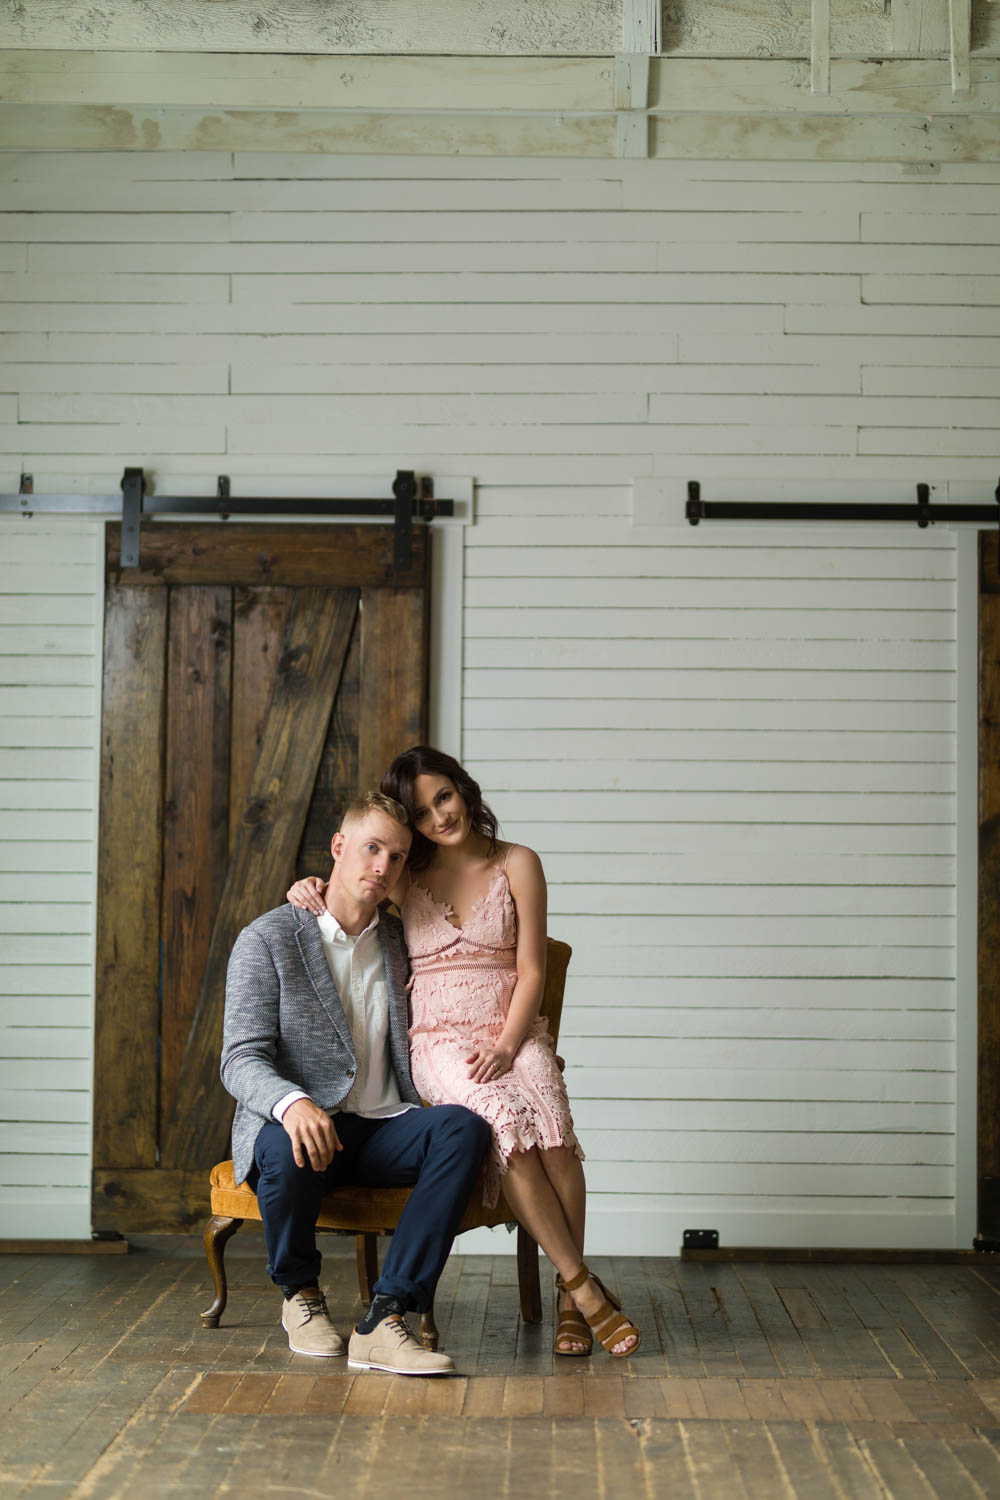 Sydney & Michael's engagement session